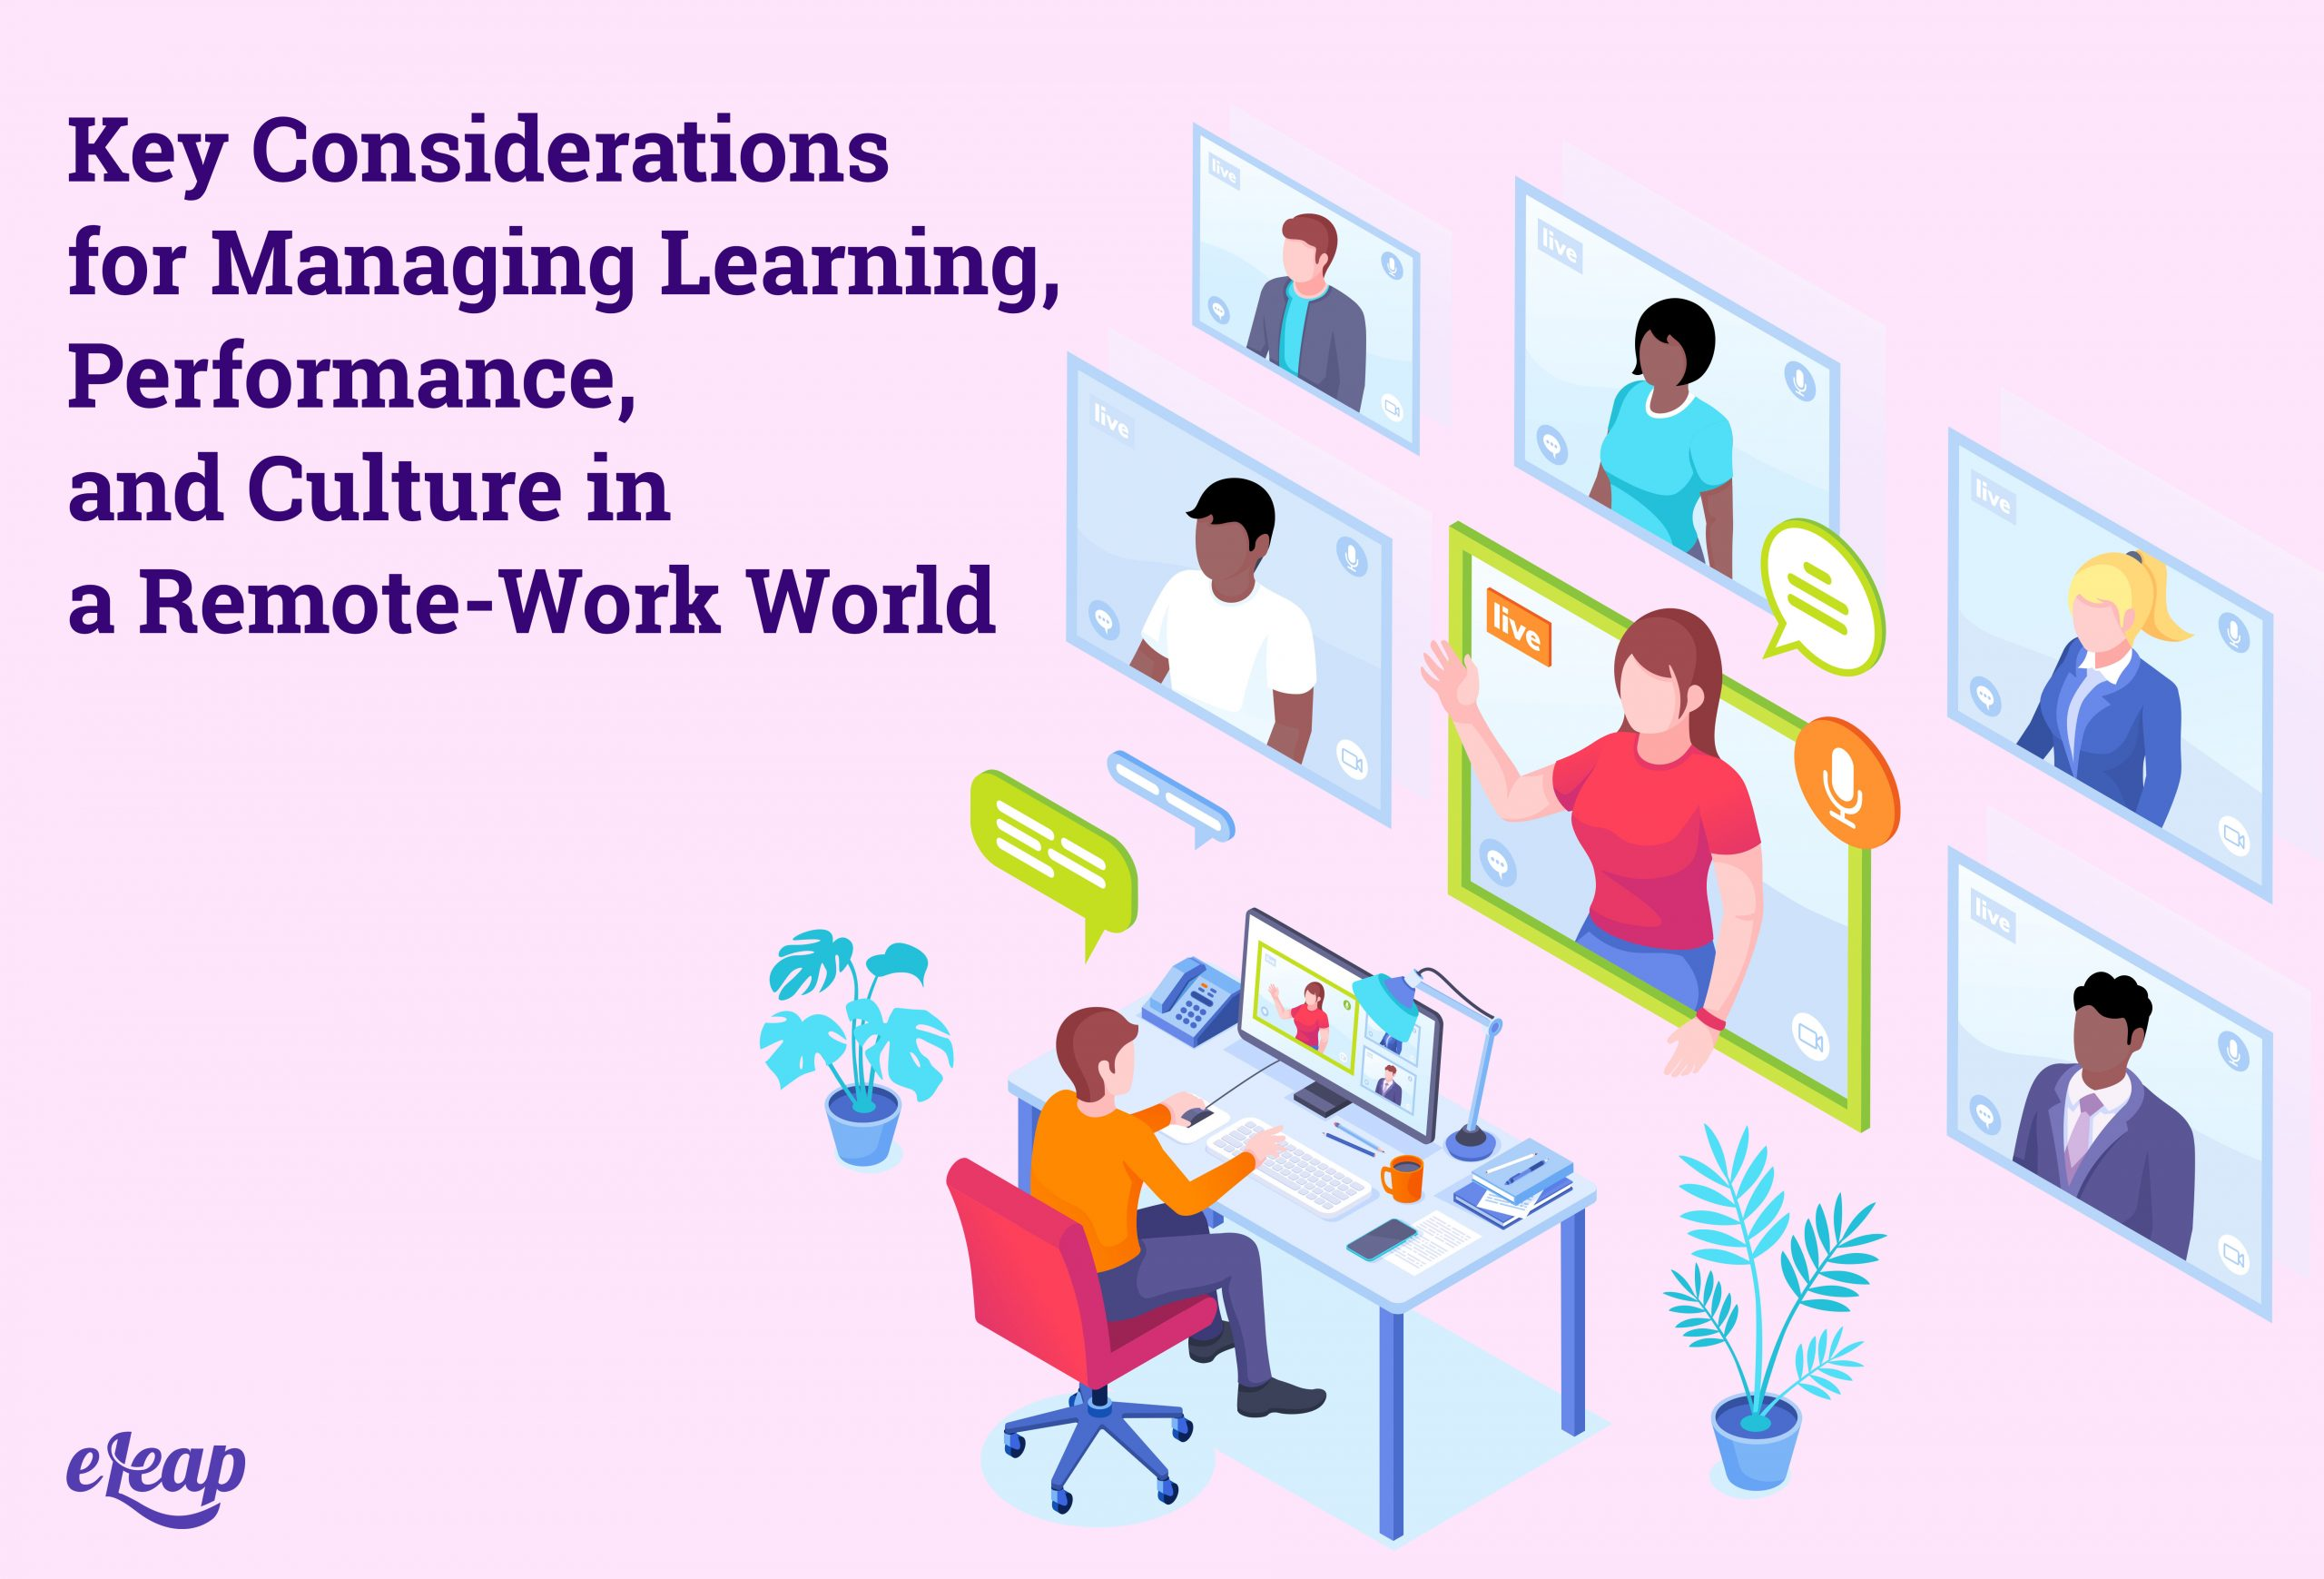 Key Considerations for Managing Learning, Performance, and Culture in a Remote-Work World